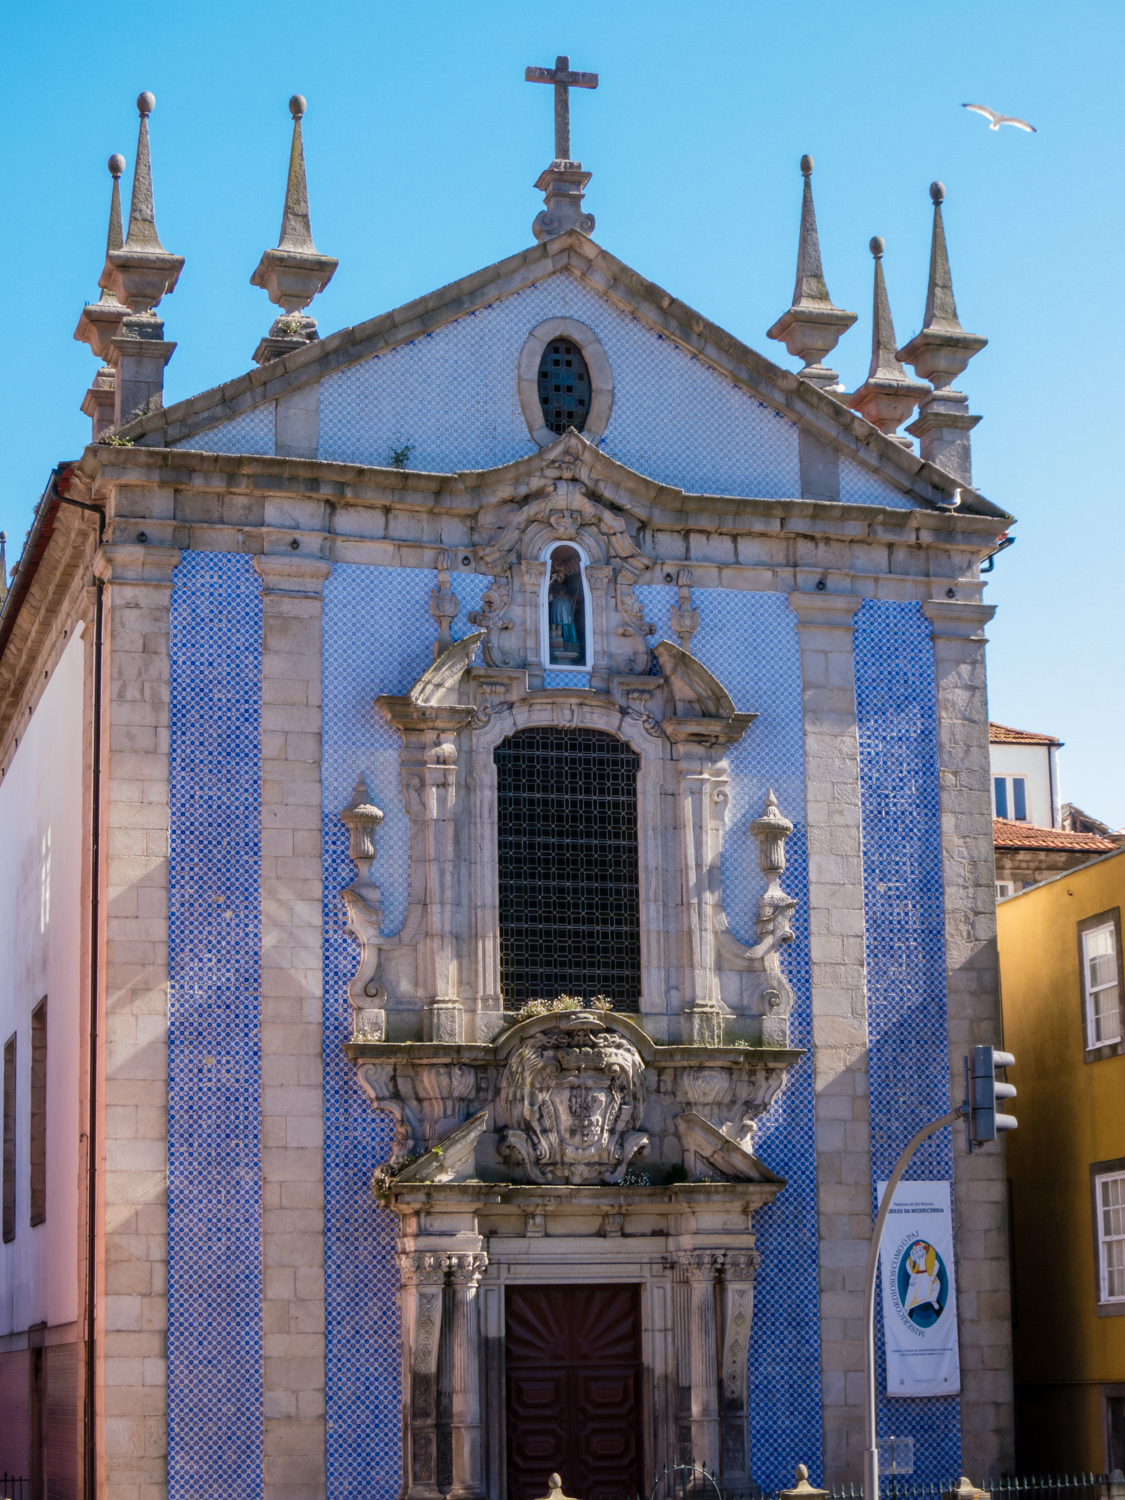 Igreja De São Nicolau (Church Of St. Nicholas) With The Facade Covered In